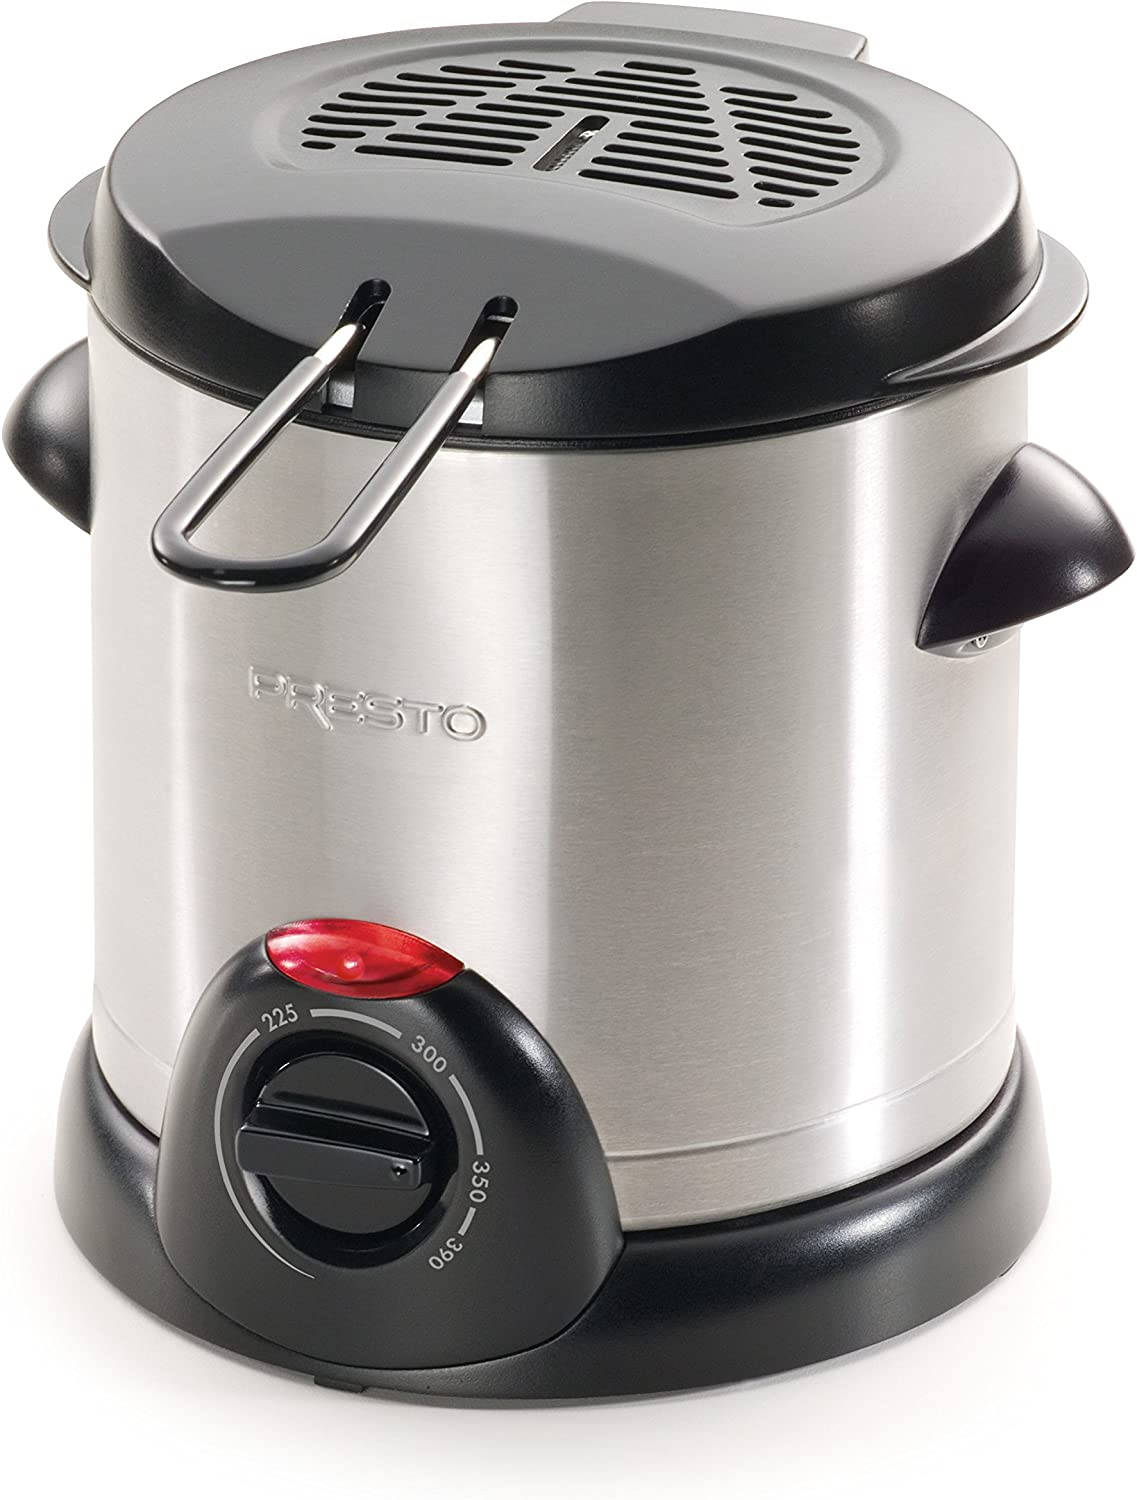 Presto 05470 Stainless Steel Electric Deep Fryer, Silver (Renewed)